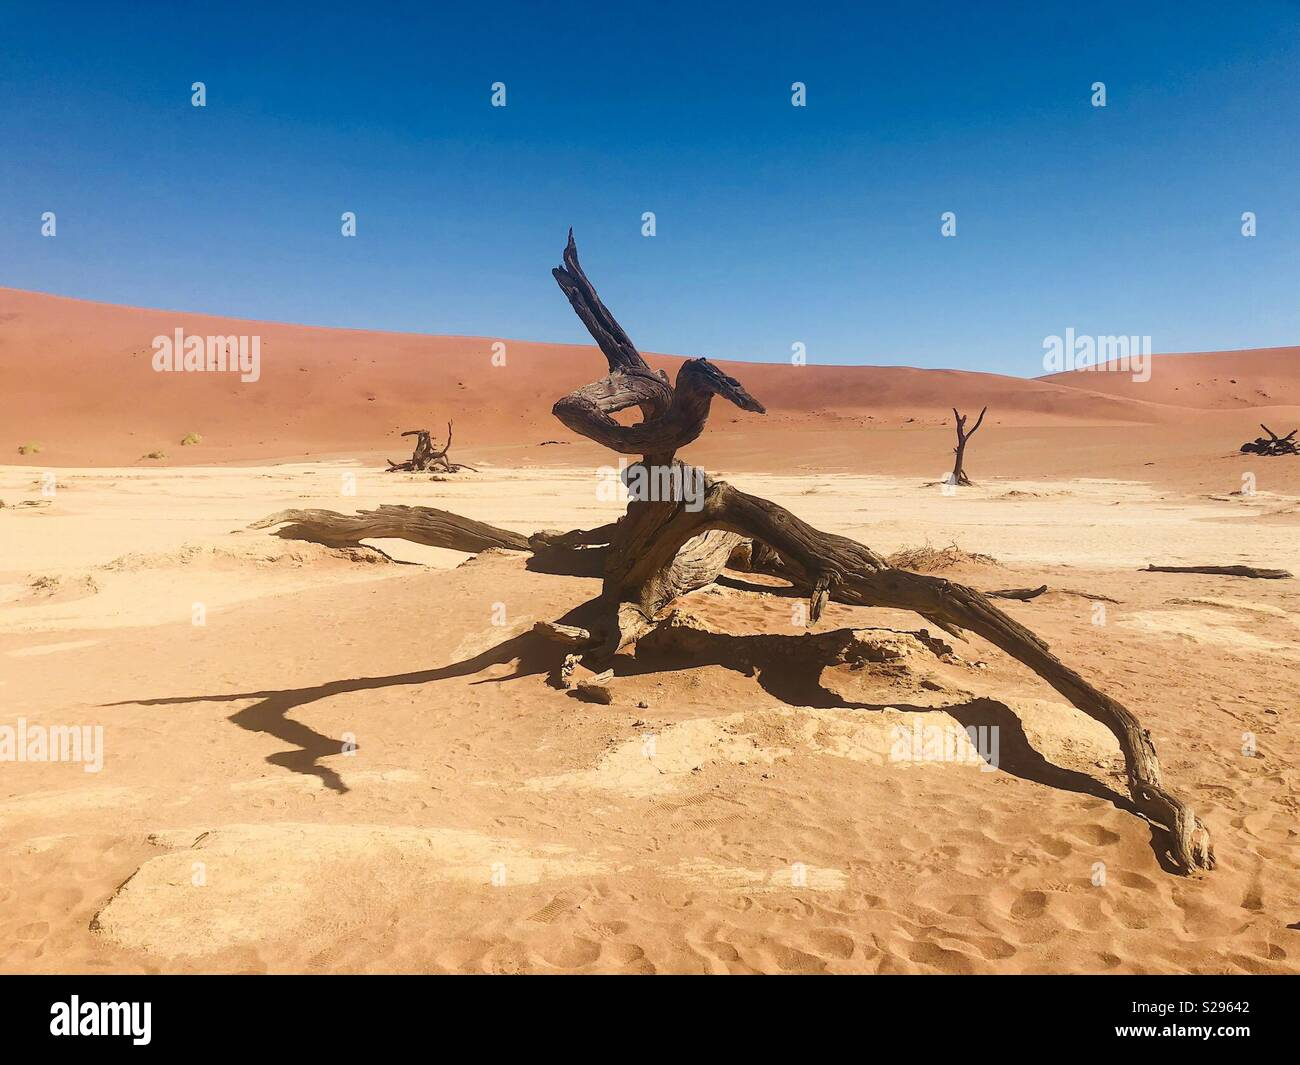 900 year old dead camelthorn trees in Deadvlei Sossusvlei Namibia. - Stock Image